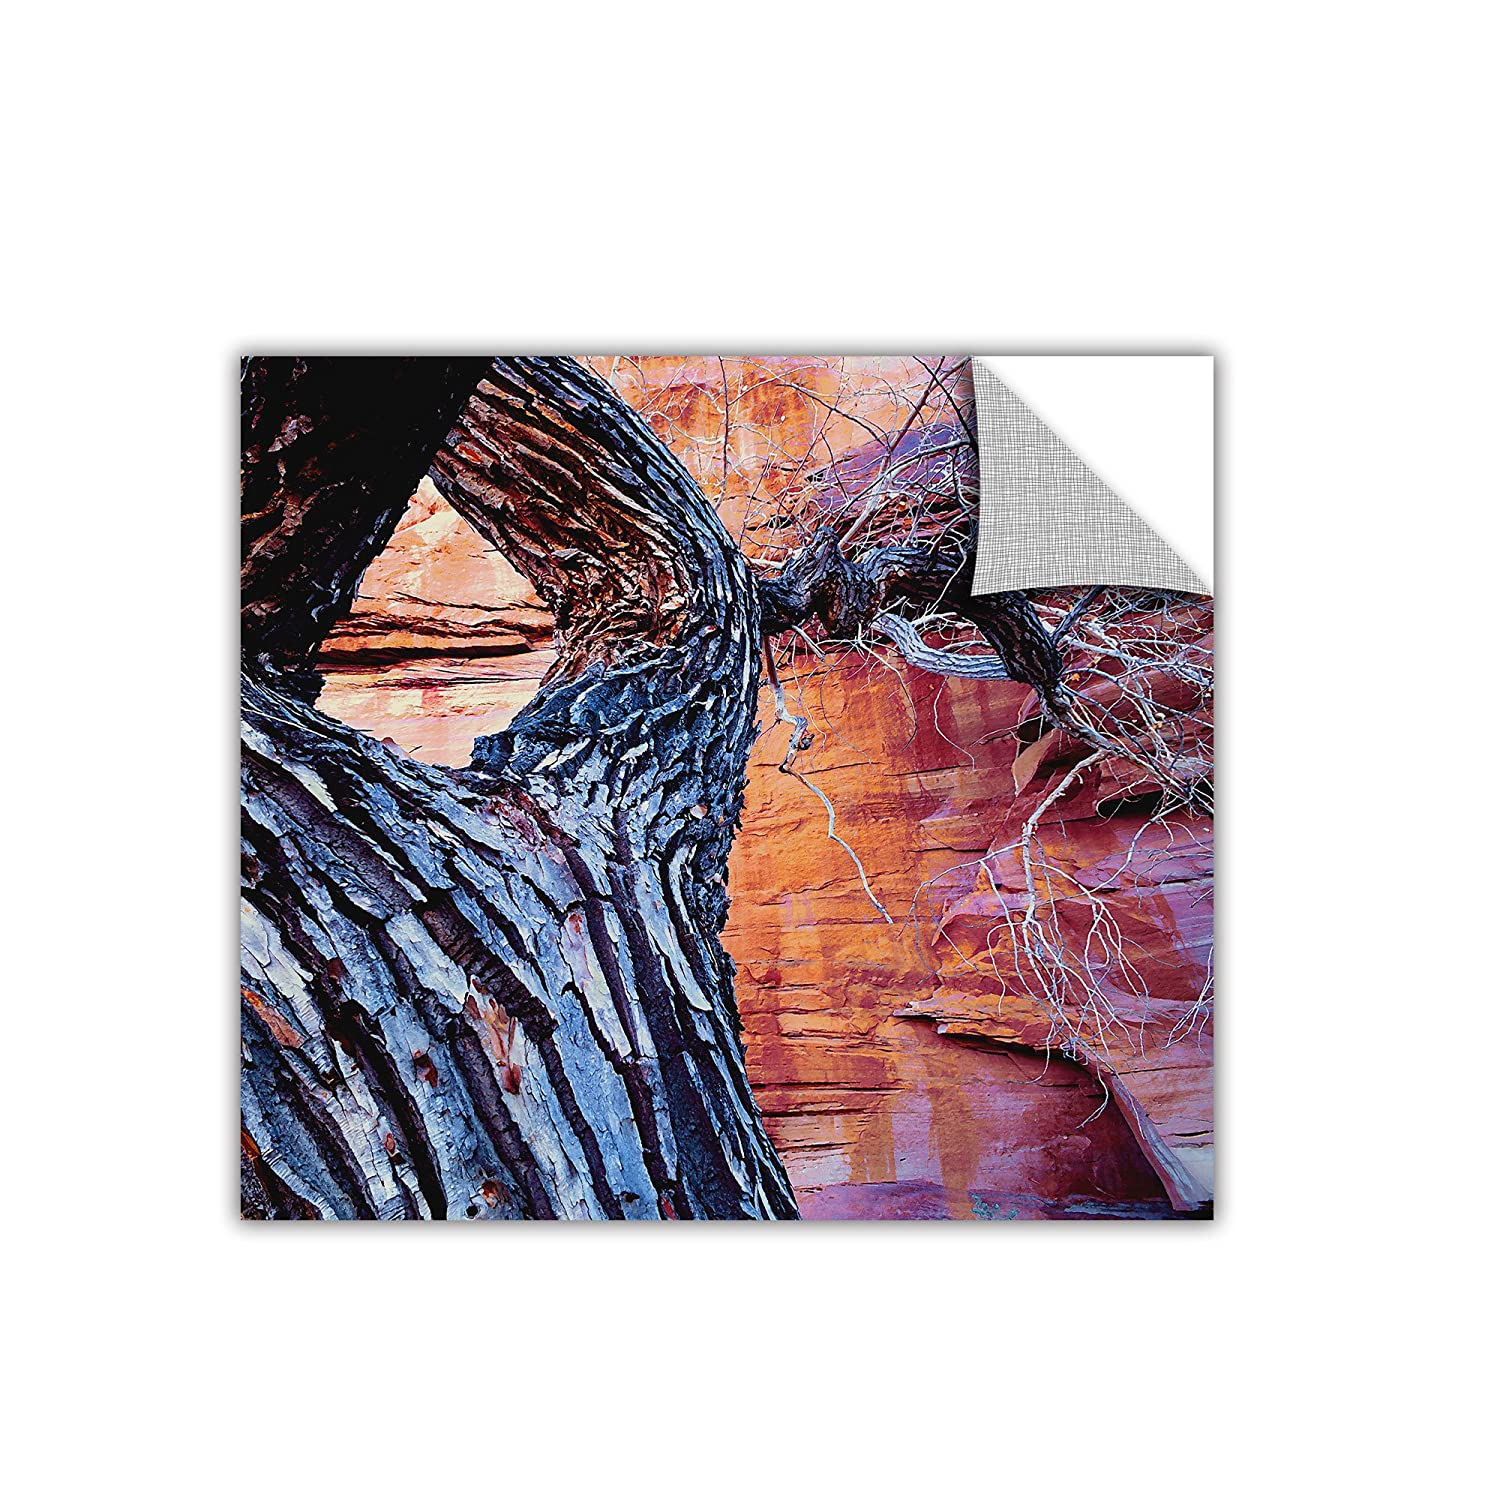 ArtWall In The Escalante Removable Wall Art by Dean Uhlinger 24 by 24-Inch